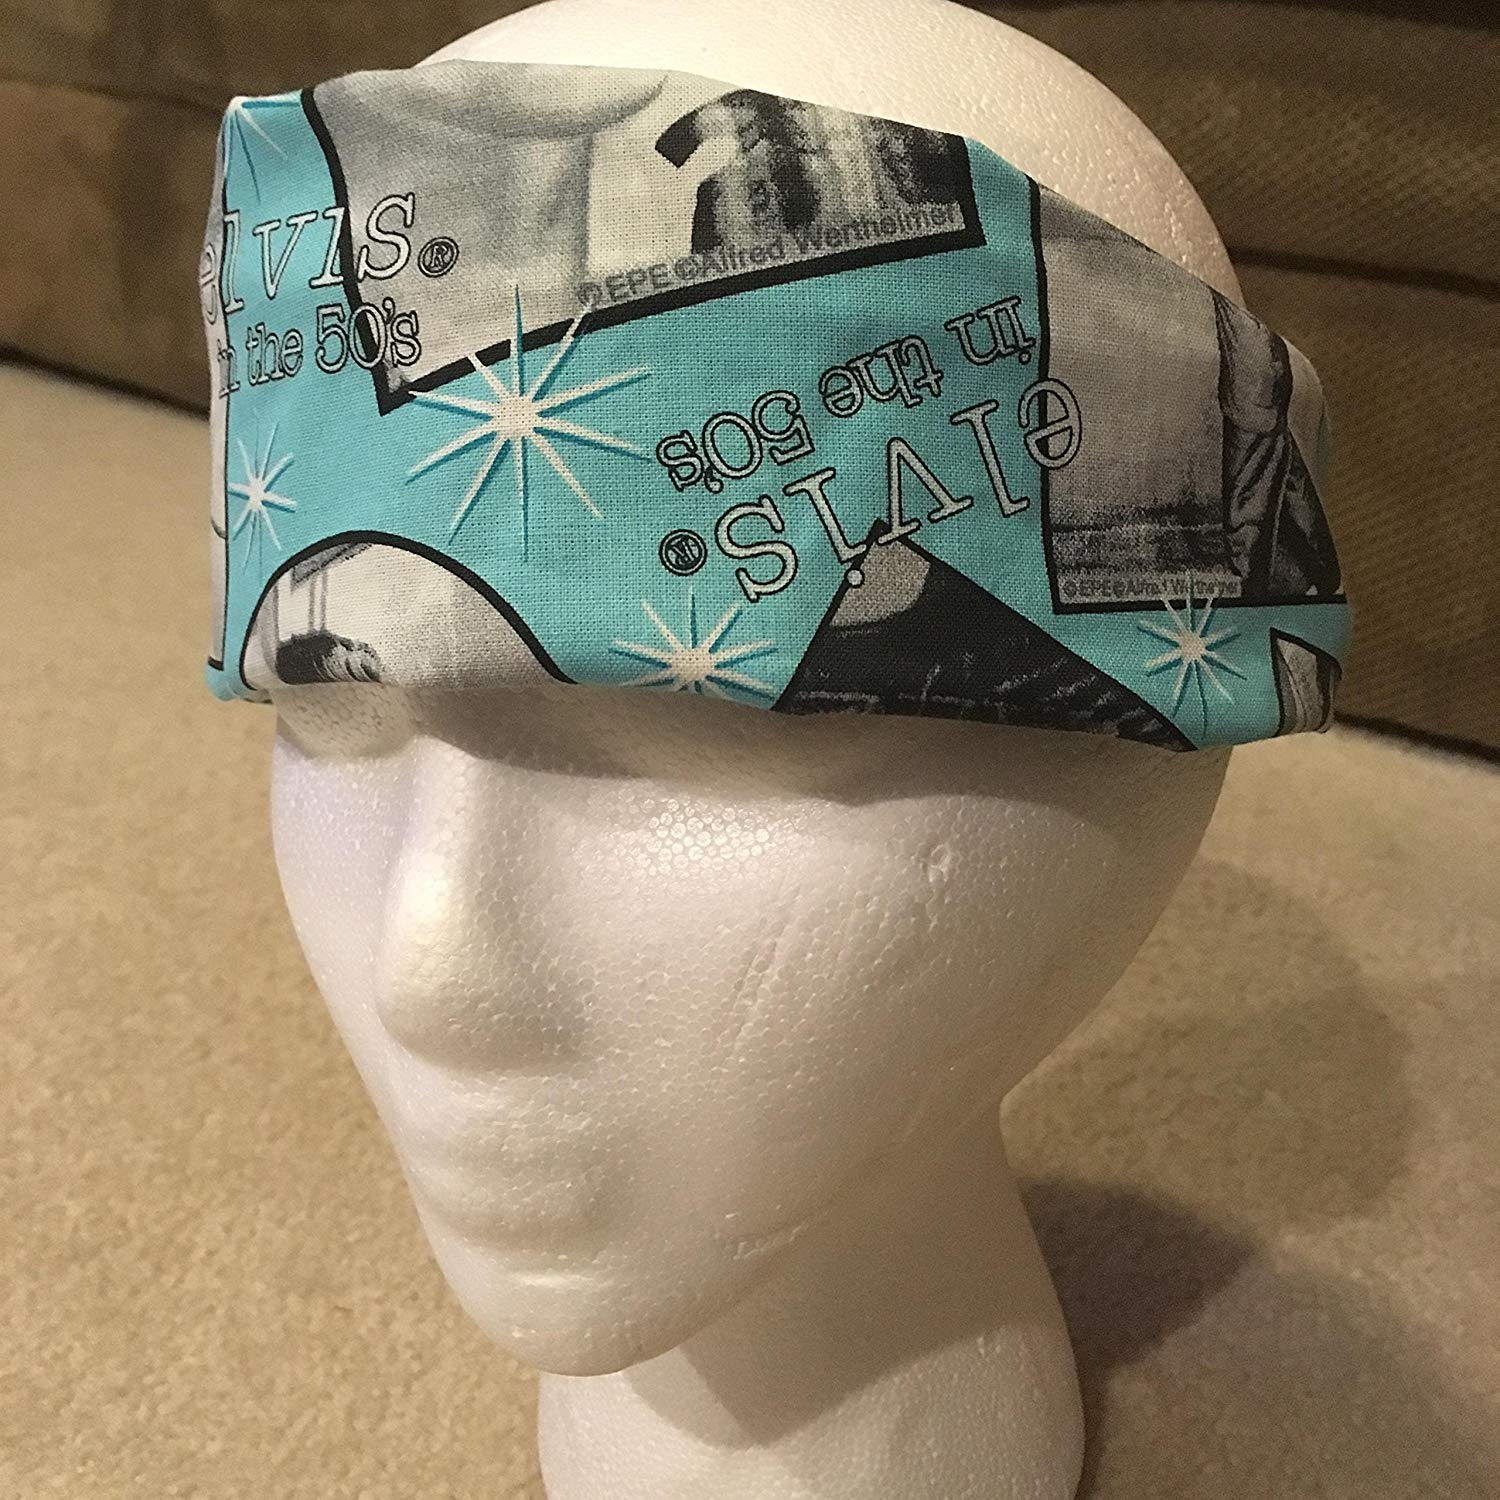 Sky Blue Elvis Headband, Reversible Handmade King of Rock and Roll Unisex Headwrap, Black with White Polka Dots on Reverse Side, One Size Fits Most (Made in United States)